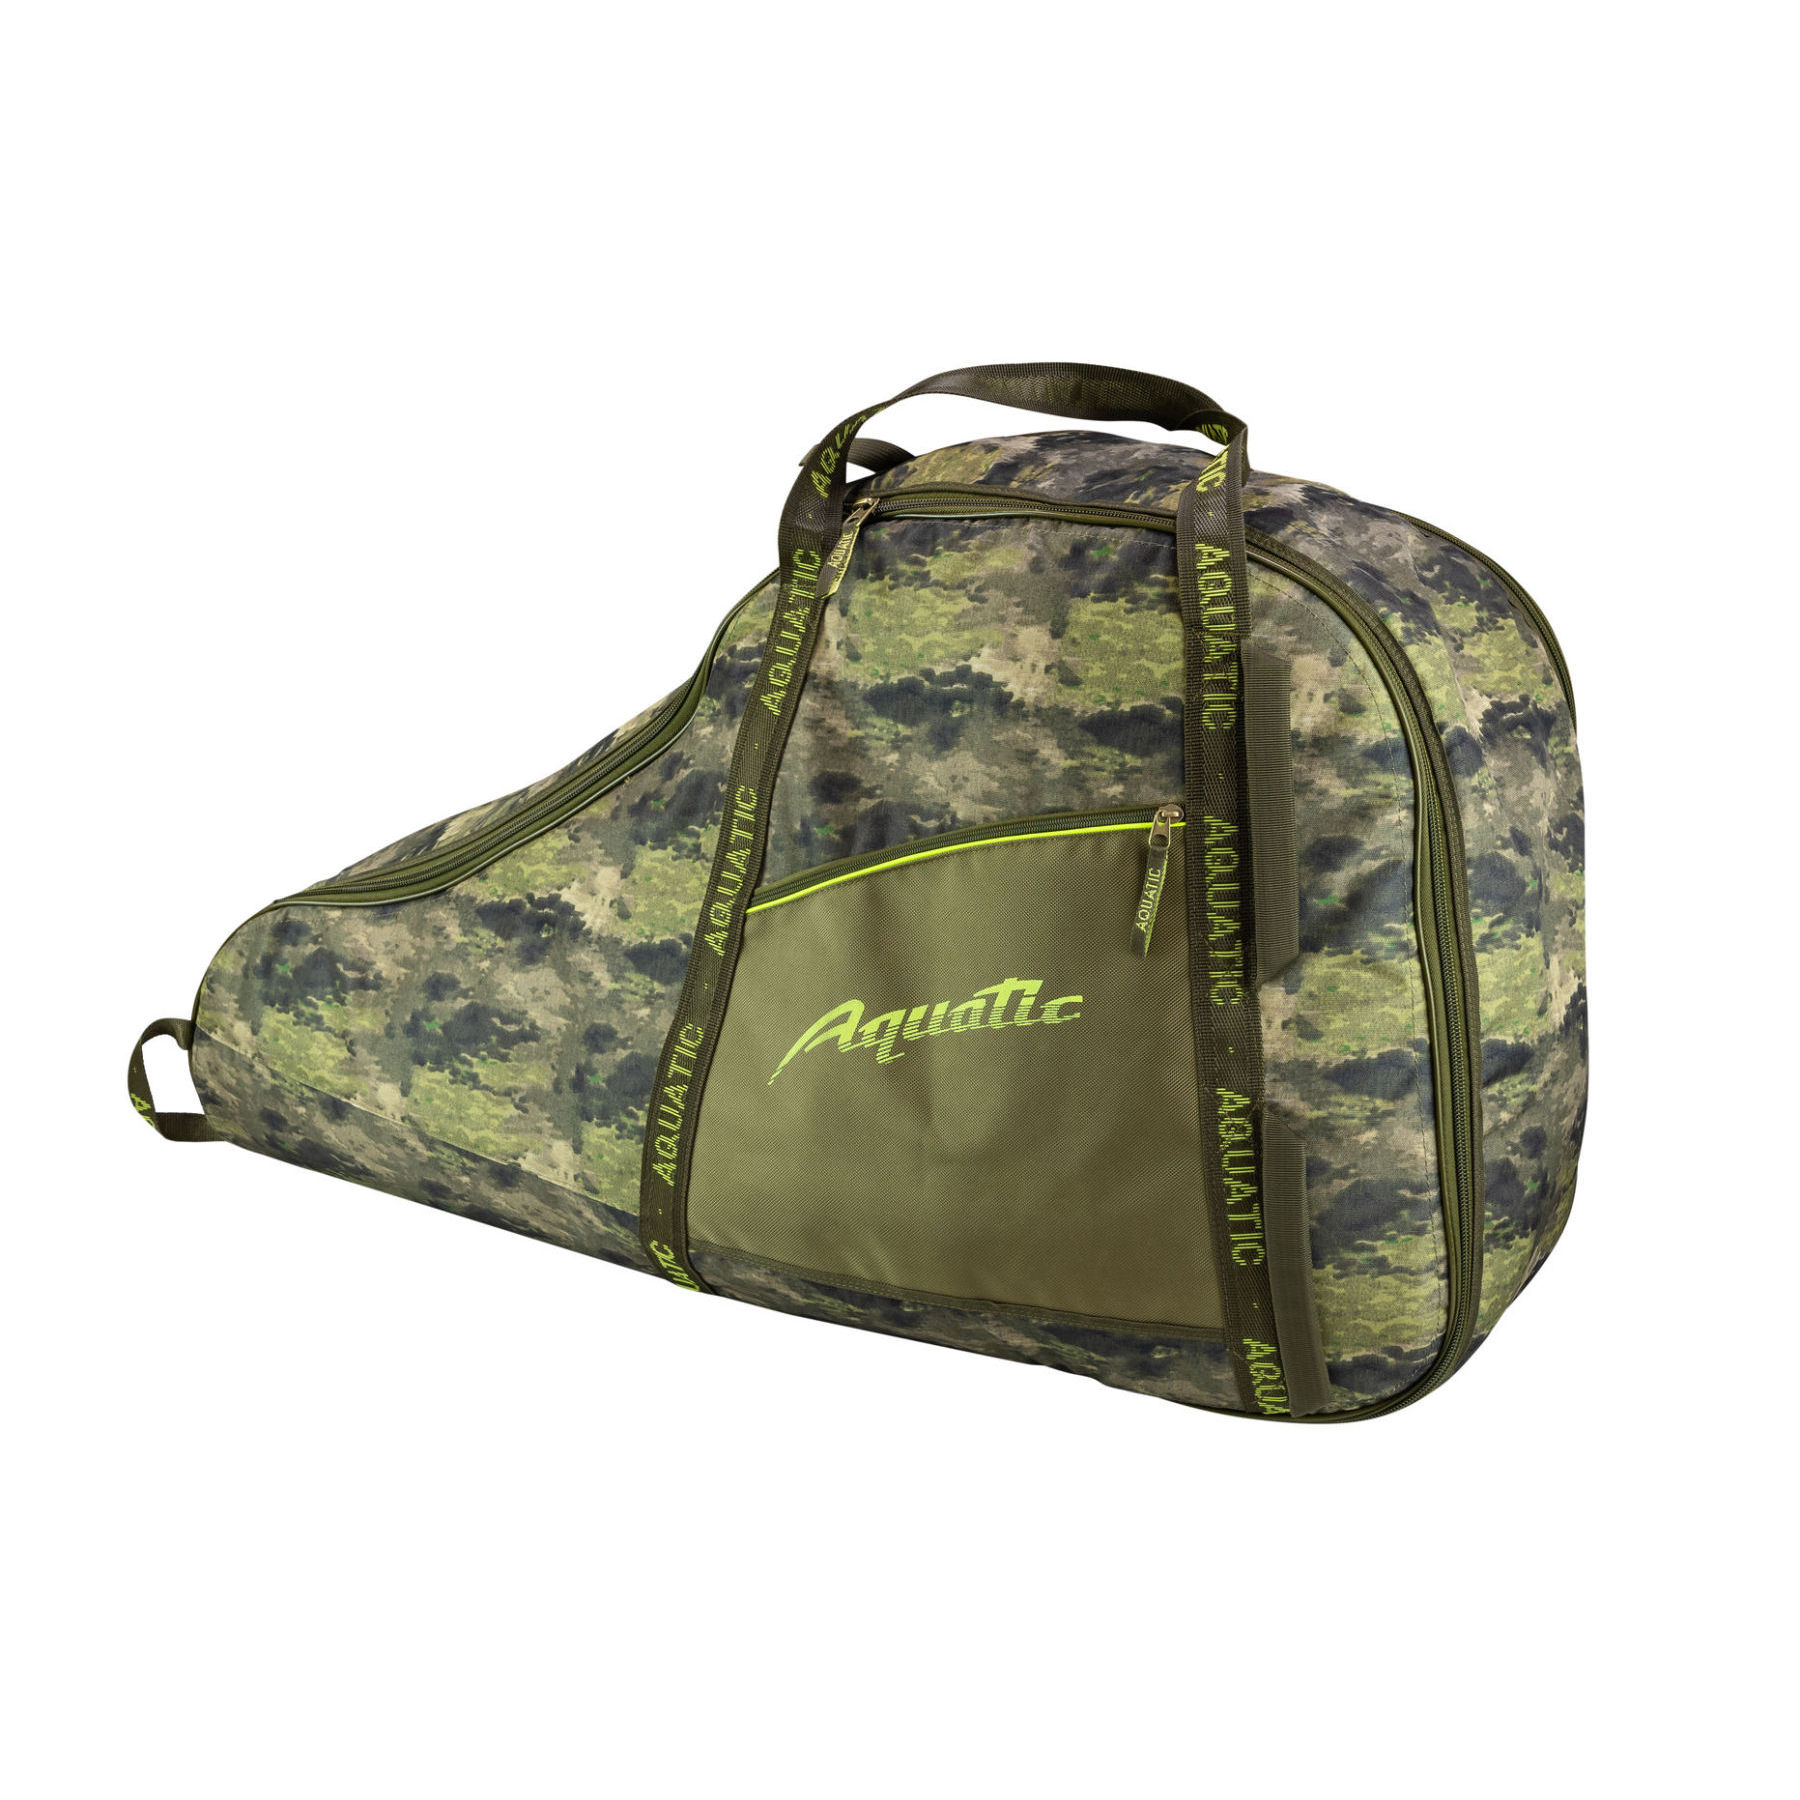 Bag-case For Storing And Carrying Motors 2 T 10-15 Hp, 4 T 6-8 Hp Aquatic Supplier, Camouflage чм-16к